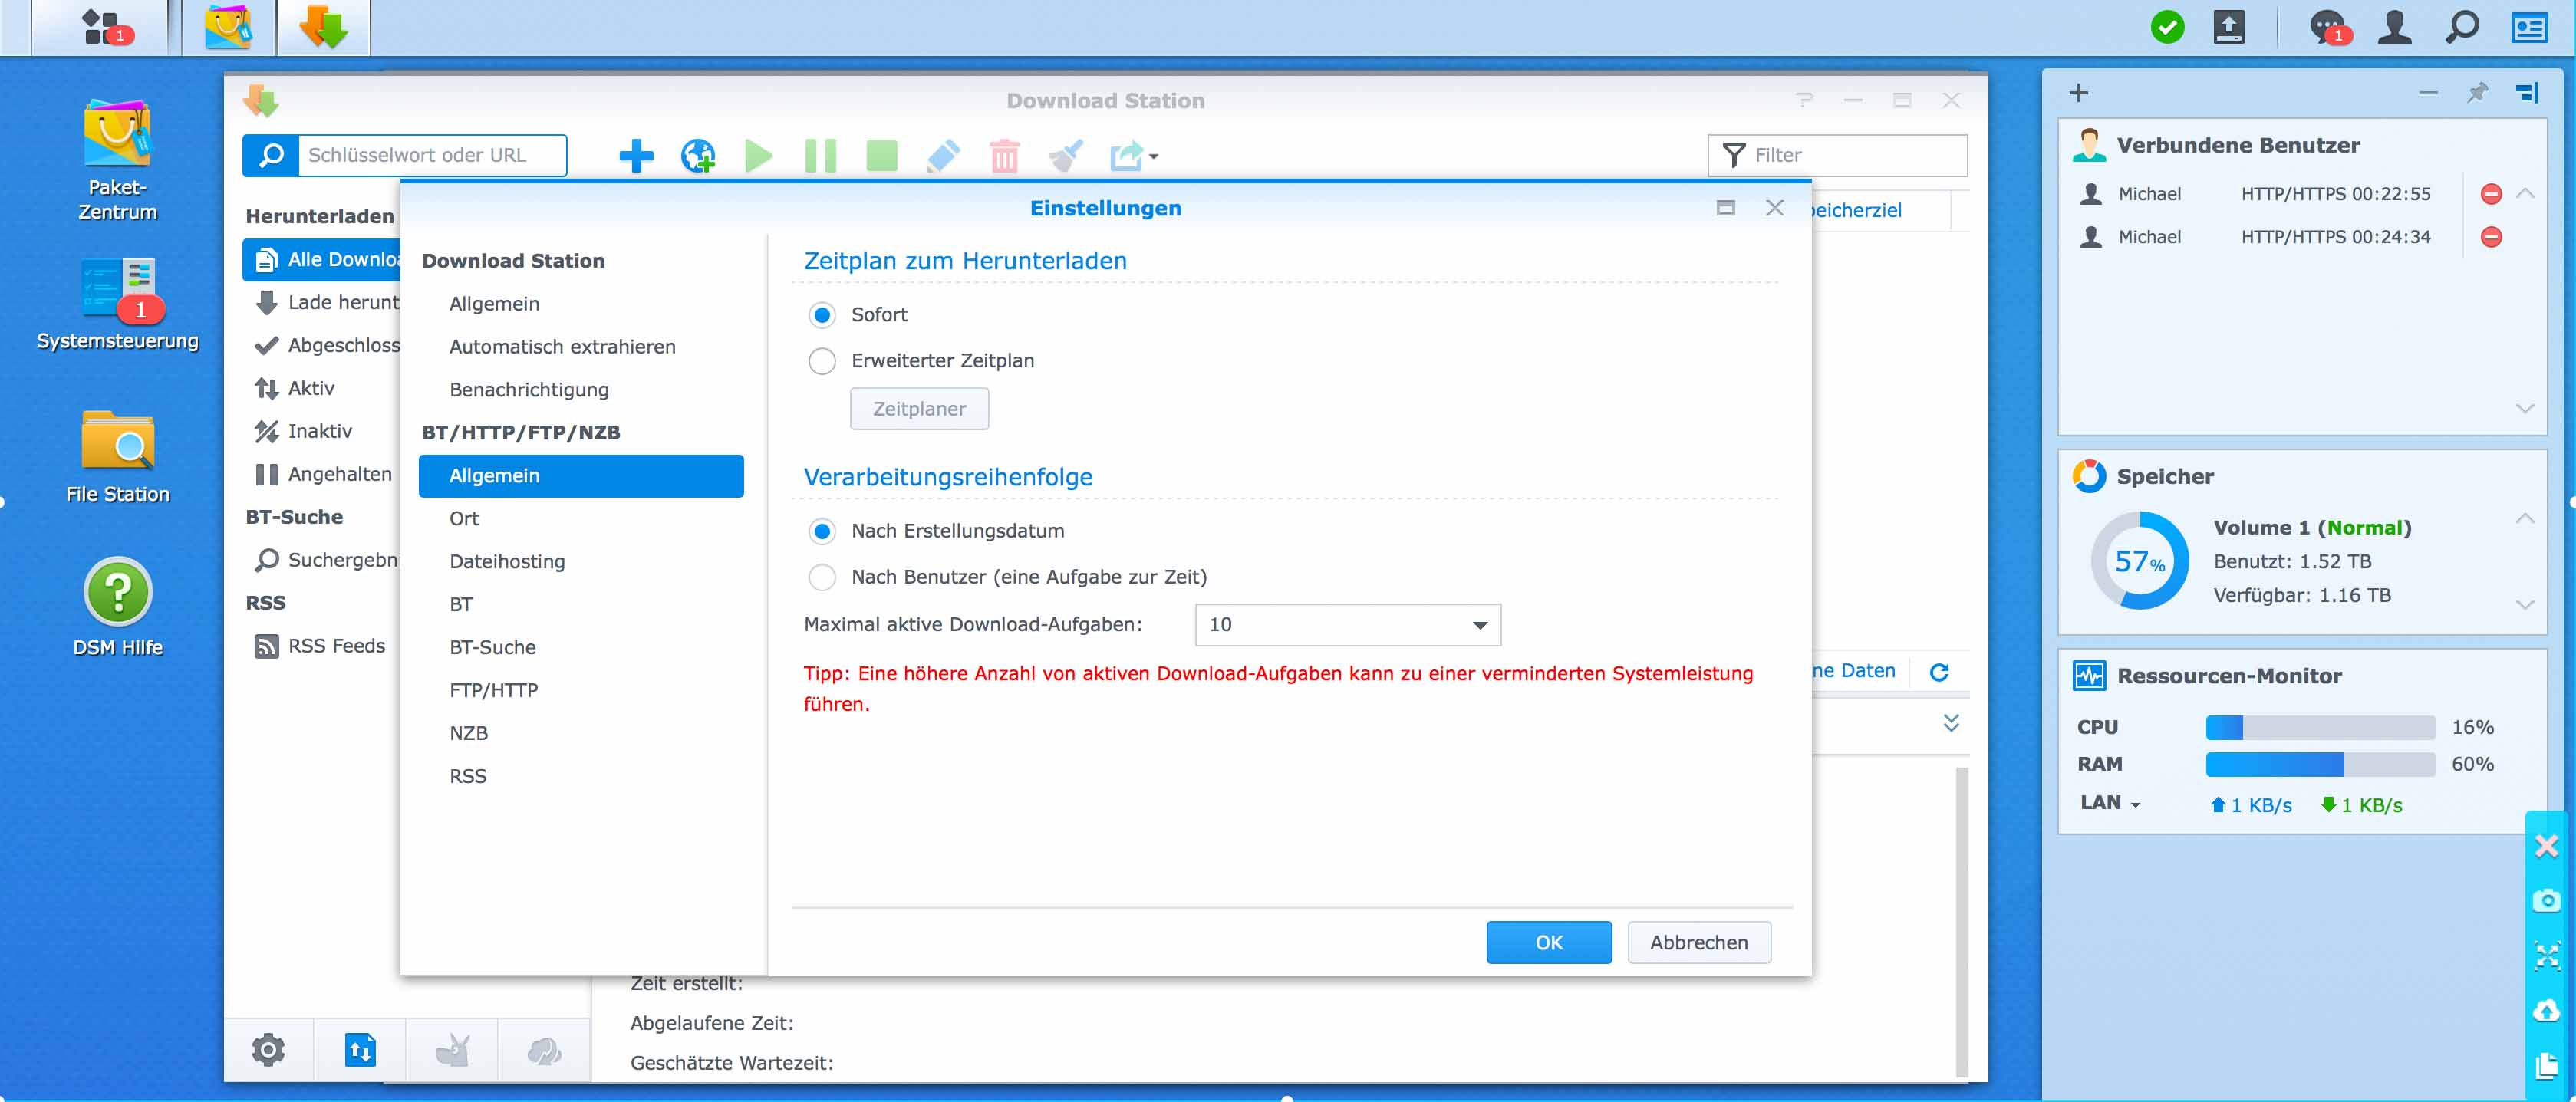 synology_tutorial_dsm6_download_station_07